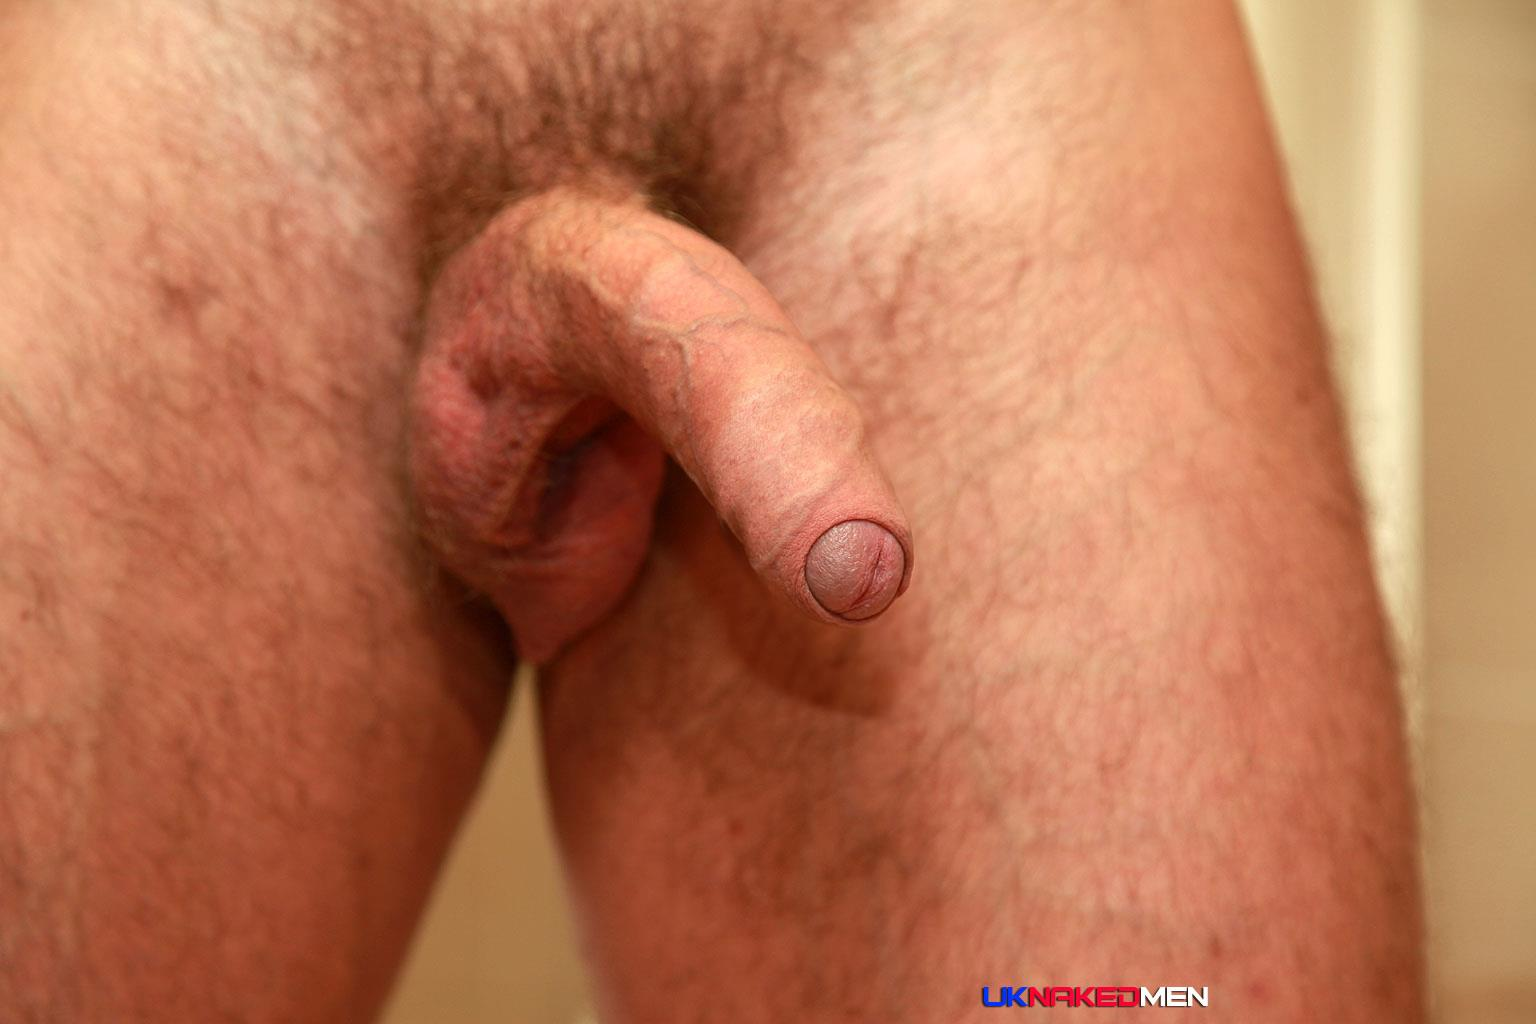 Porn uncut dick old gay sucking patrick is